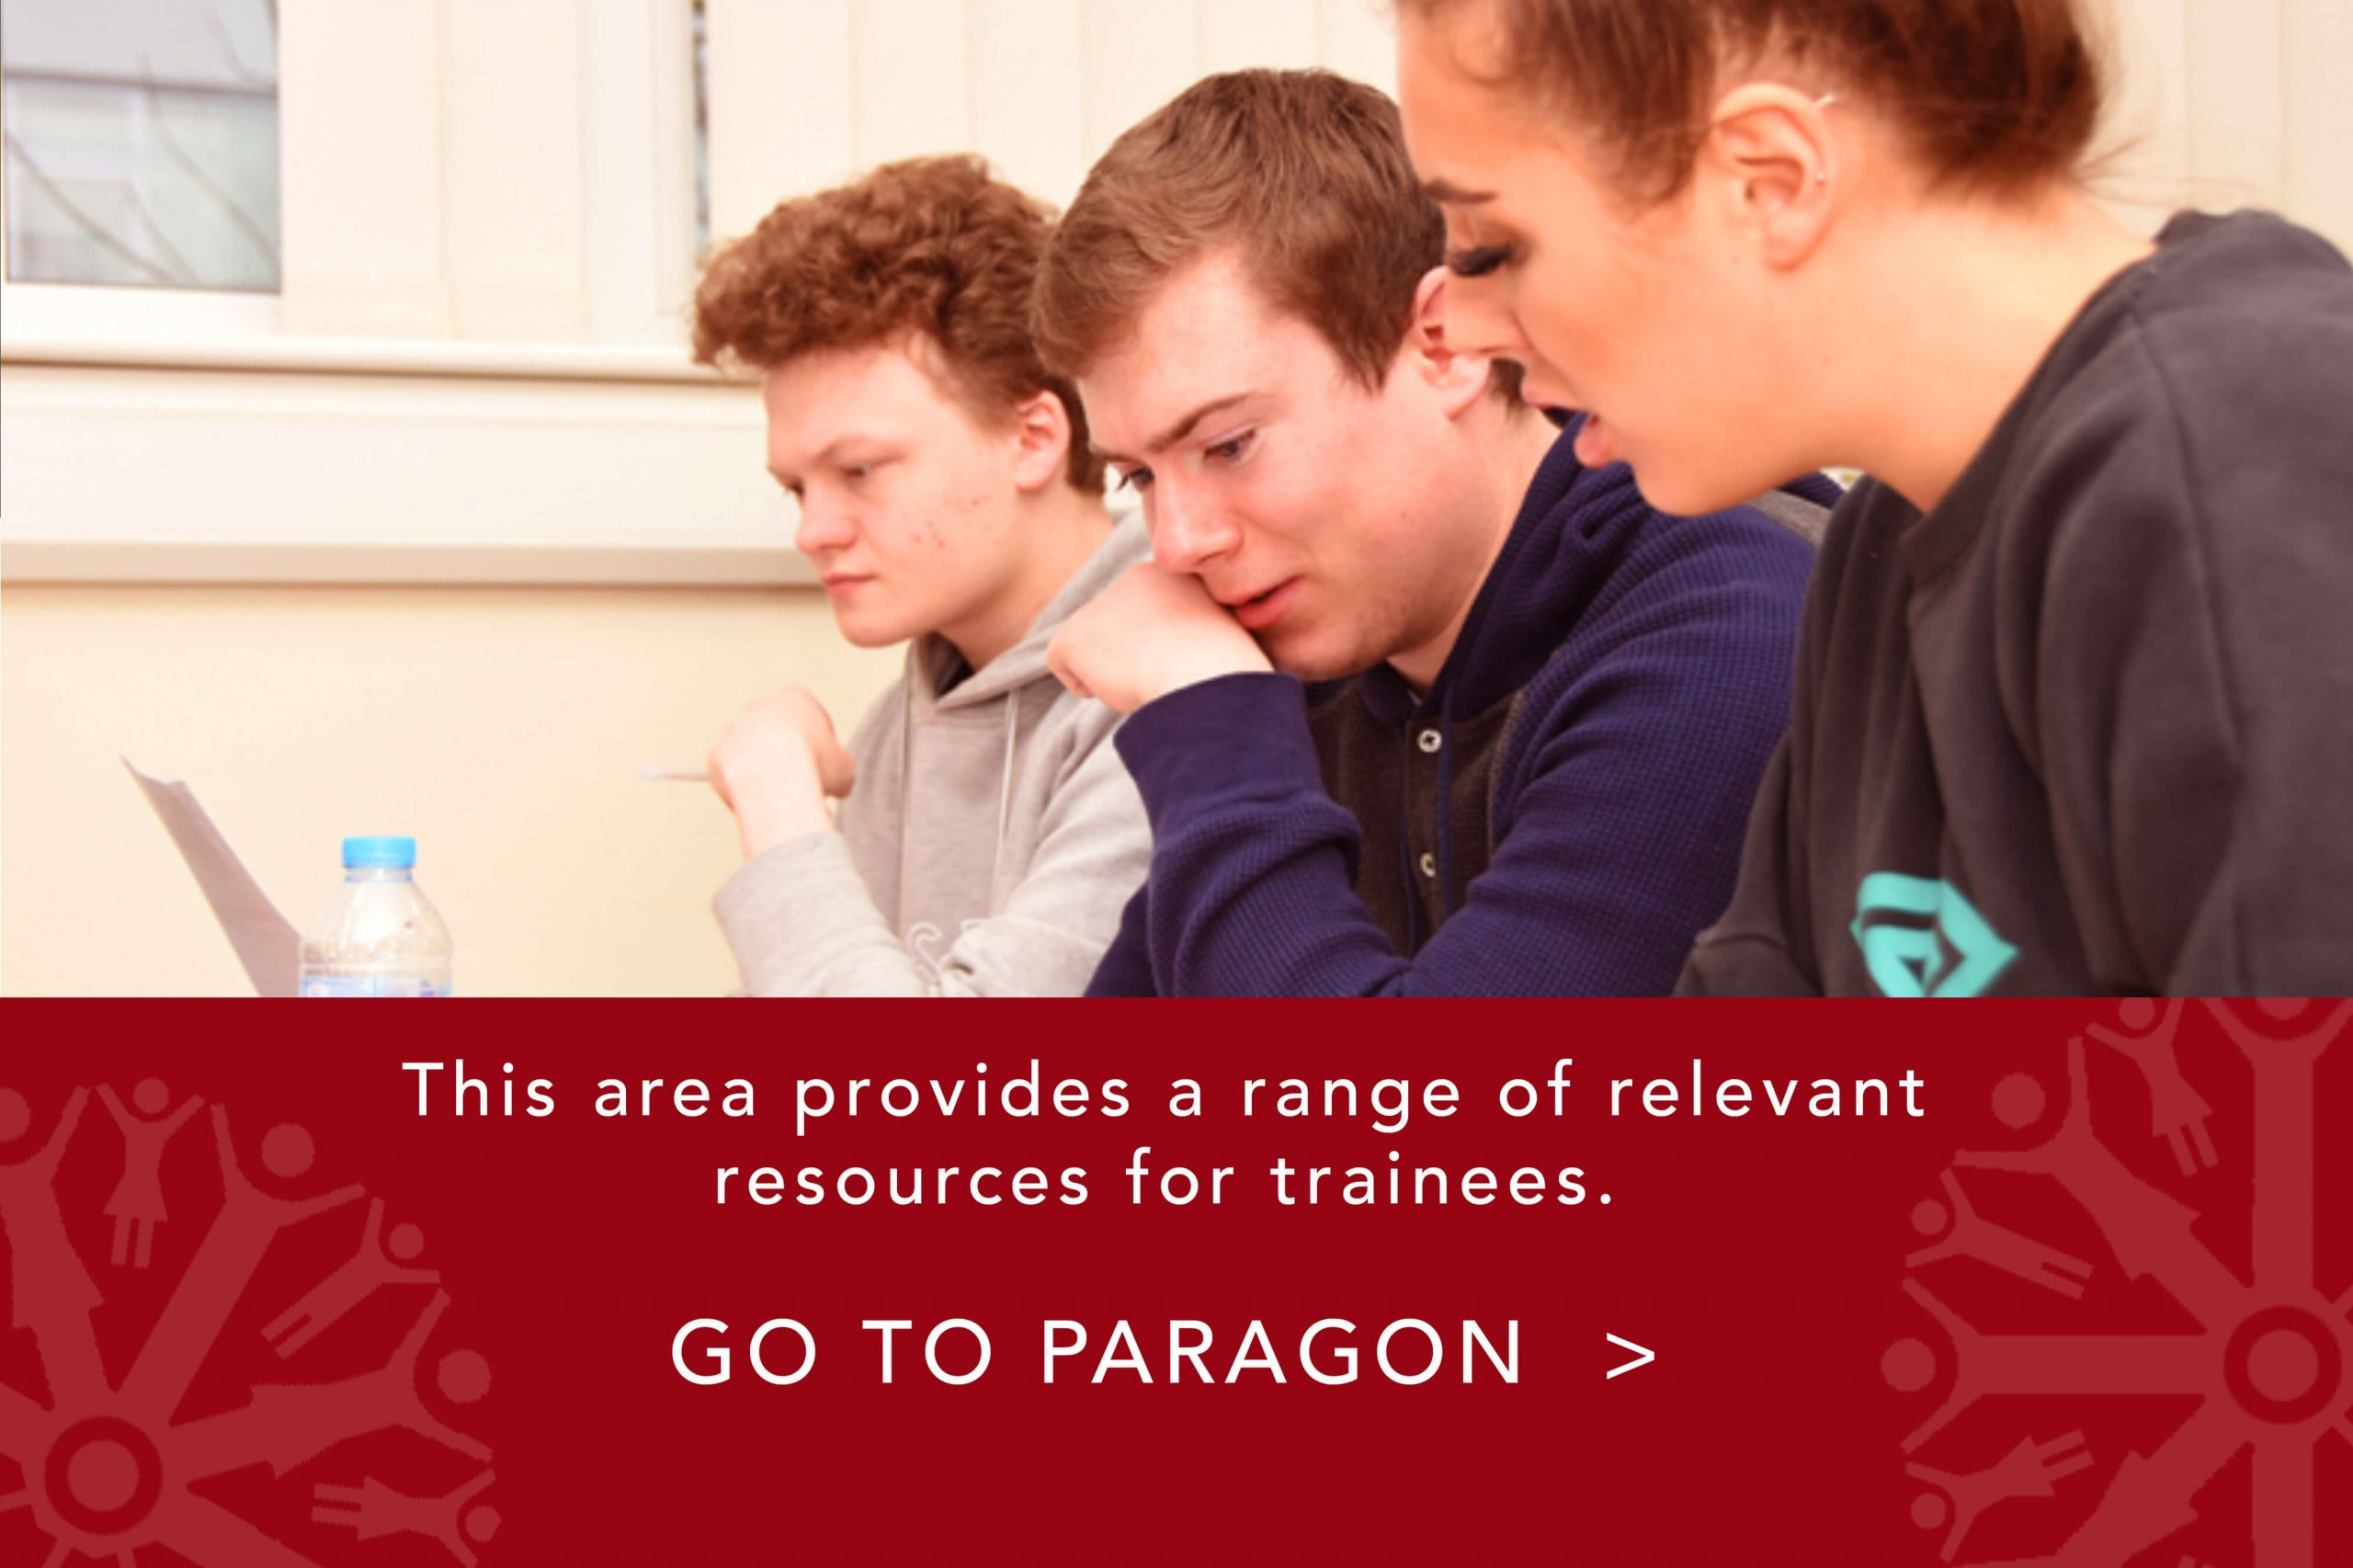 Link to our paragon area which provides a range of relevant resources for trainees